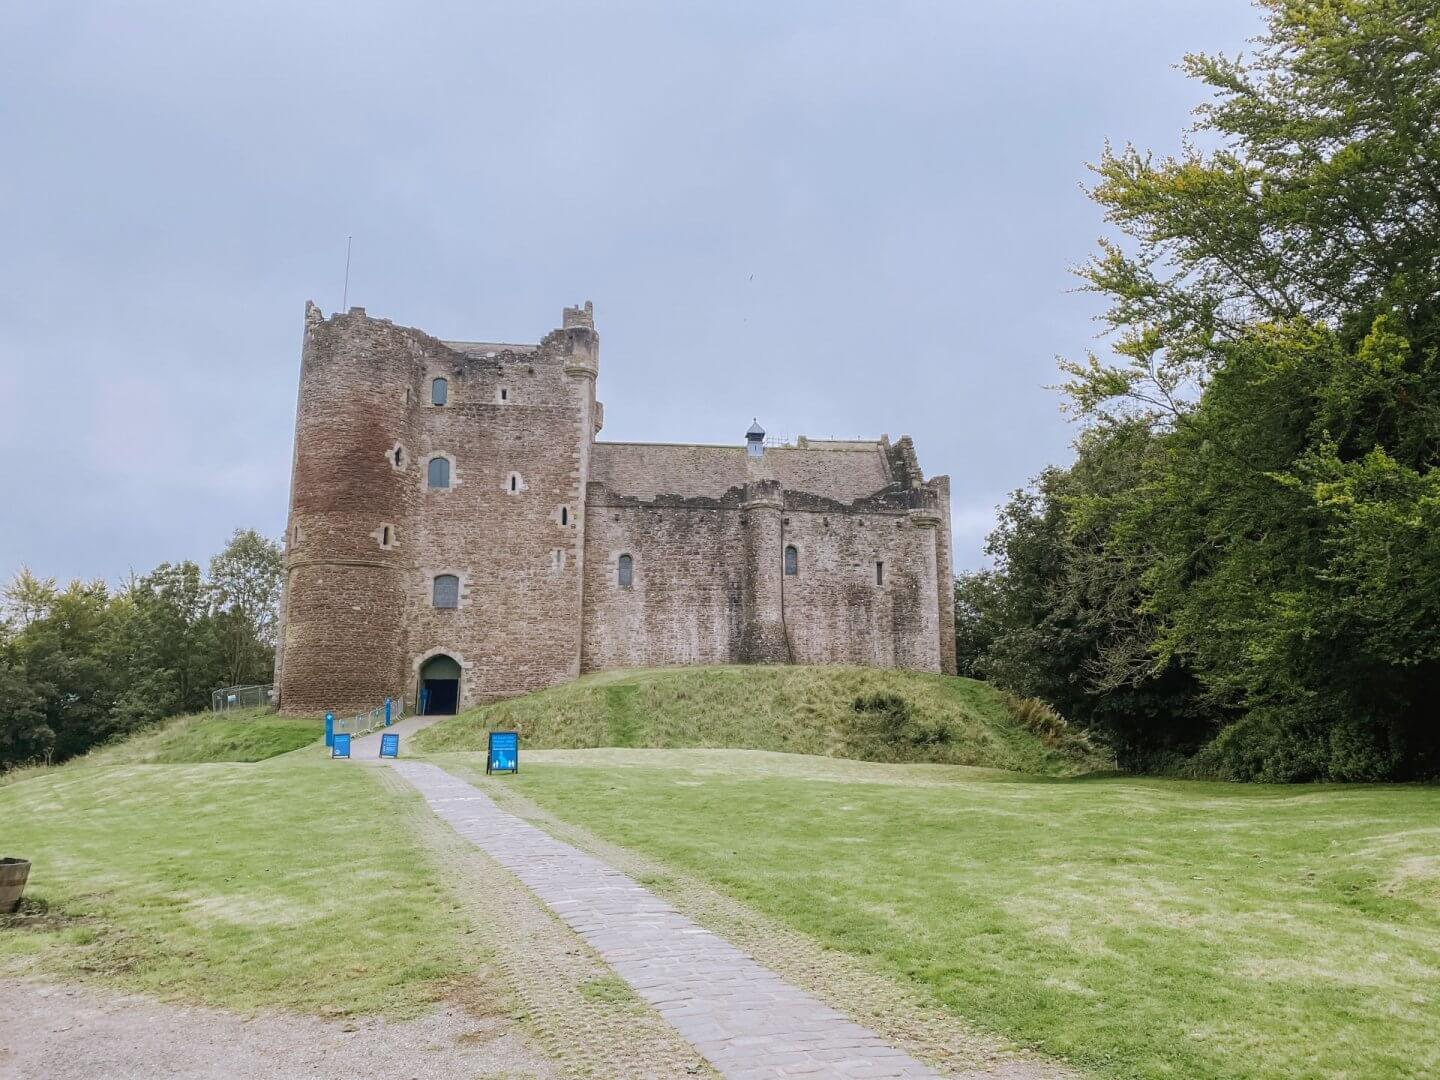 image of Doune Castle, castles in Scotland to visit. Location of Outlander filming